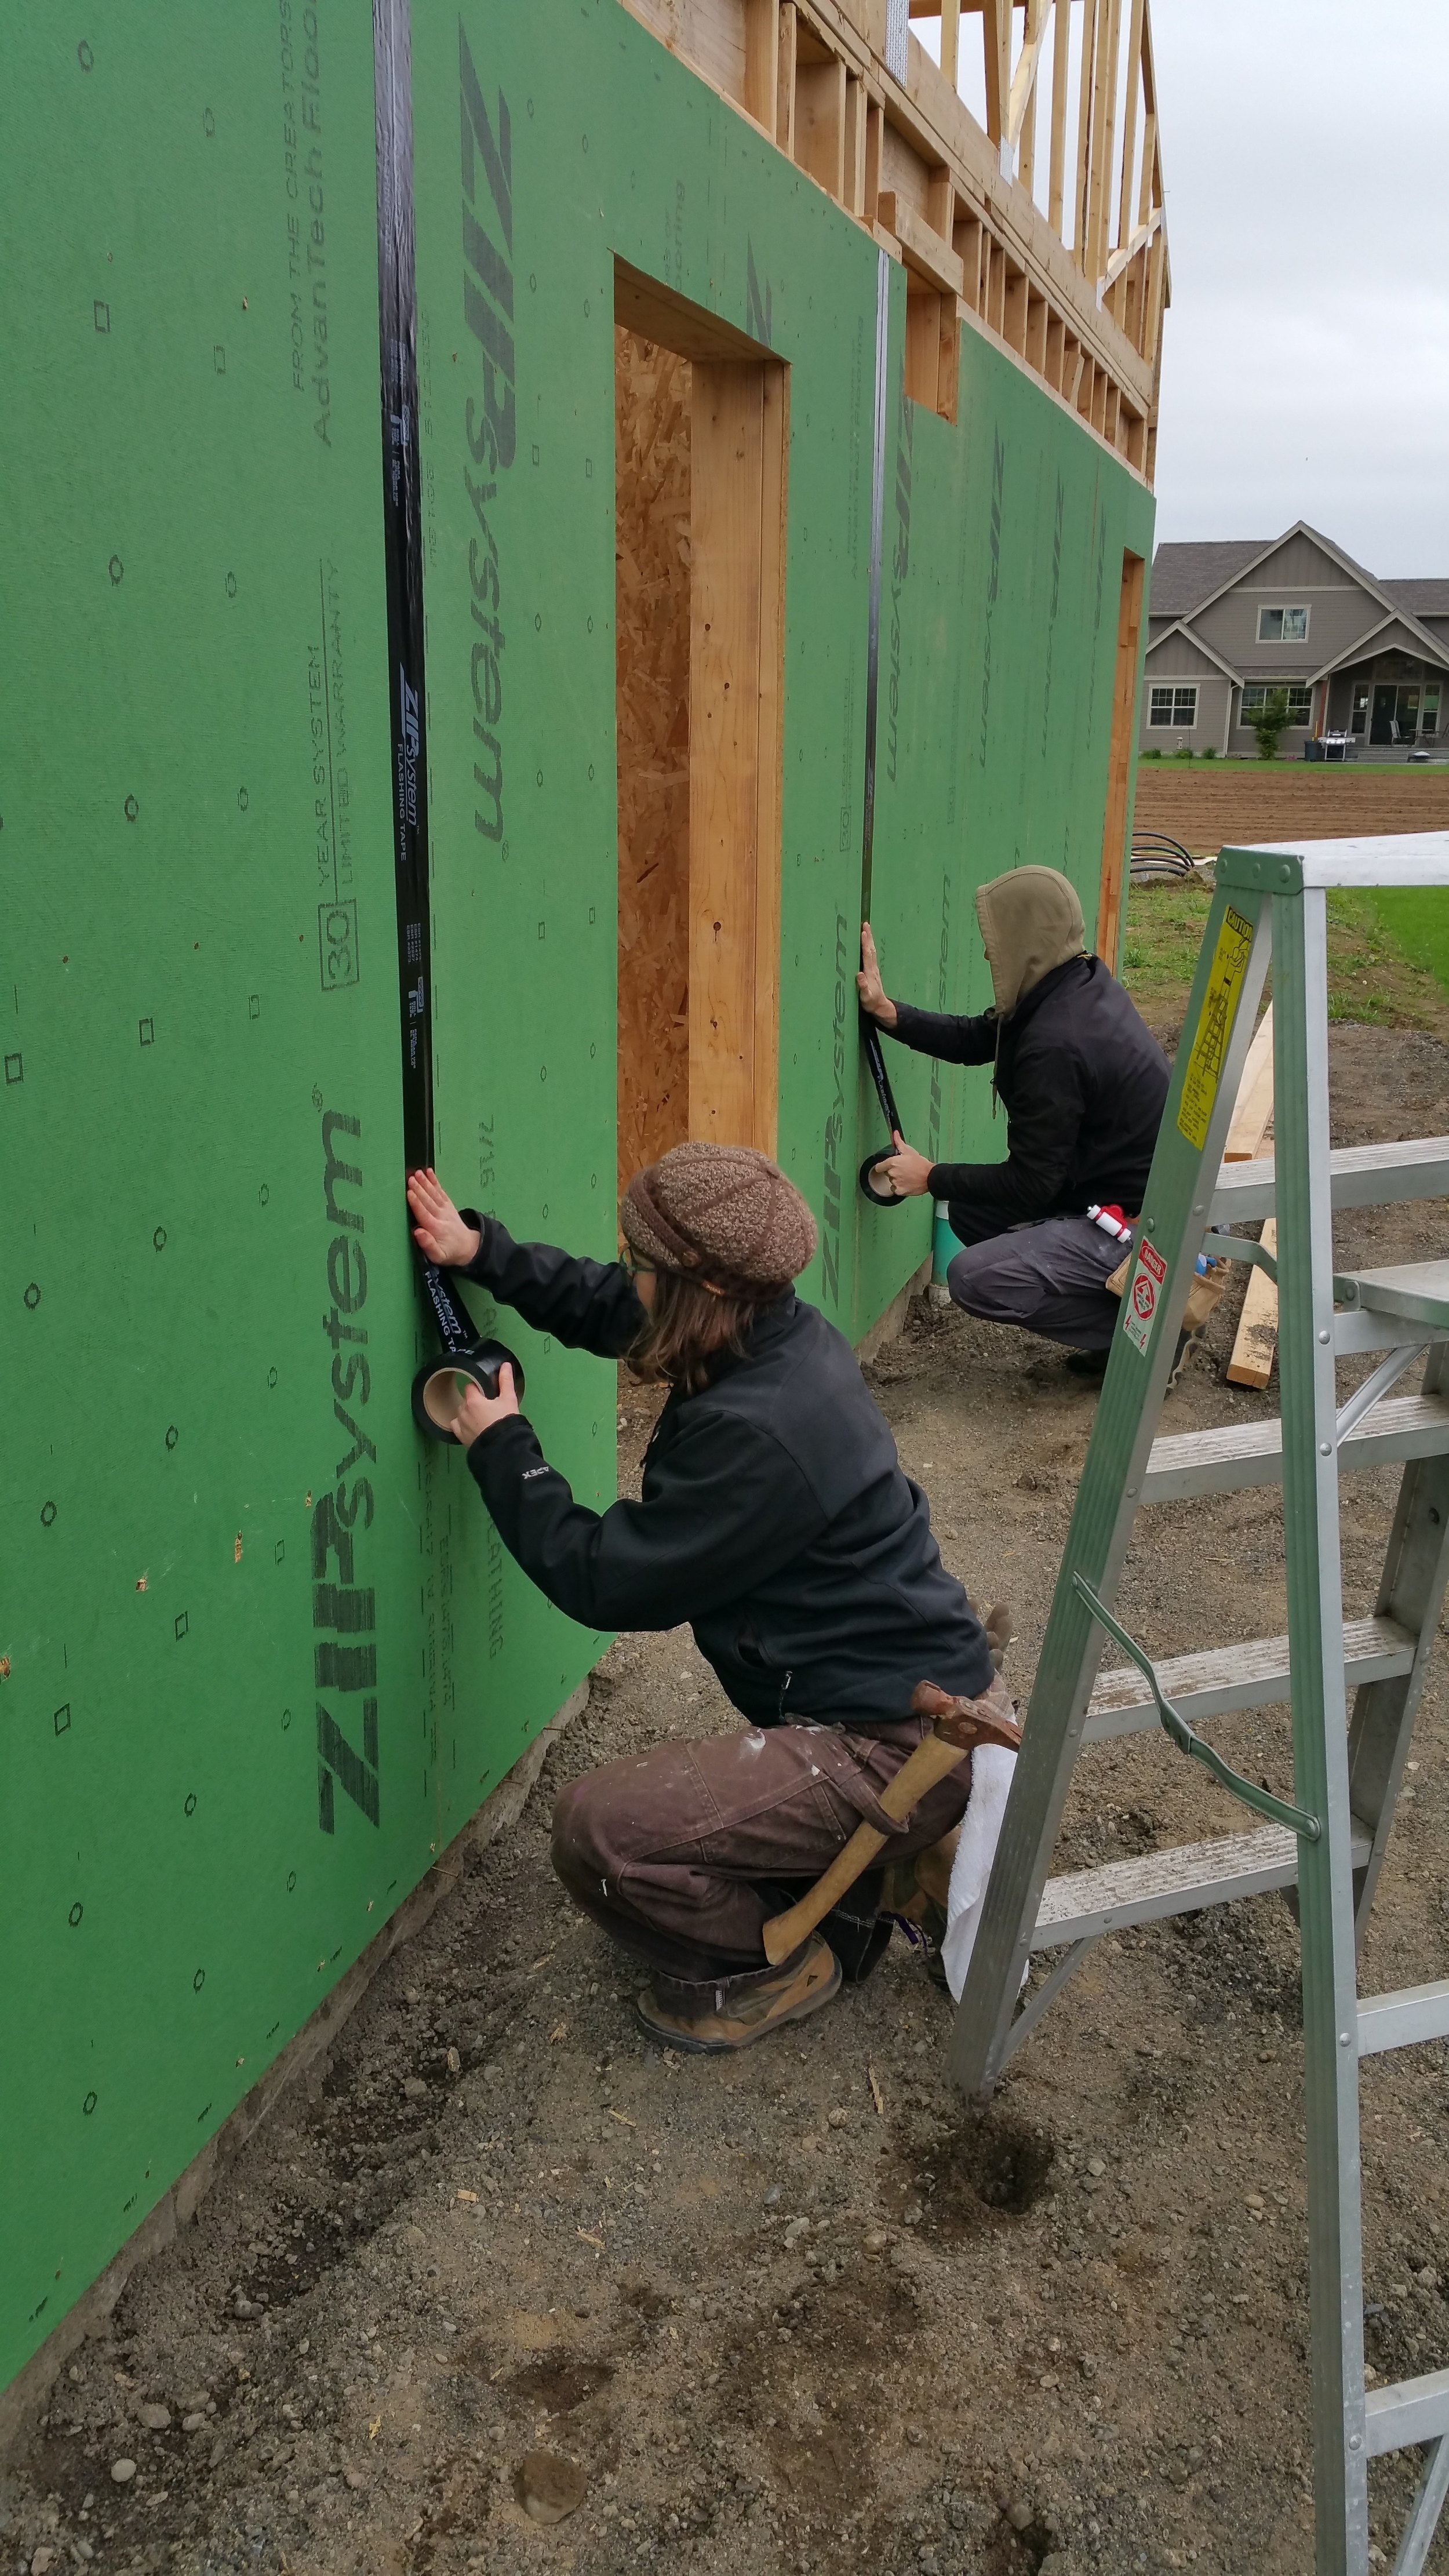 Our Technicians Brenda (L) and Stephen (R) applying Zip System flashing tape to seams.